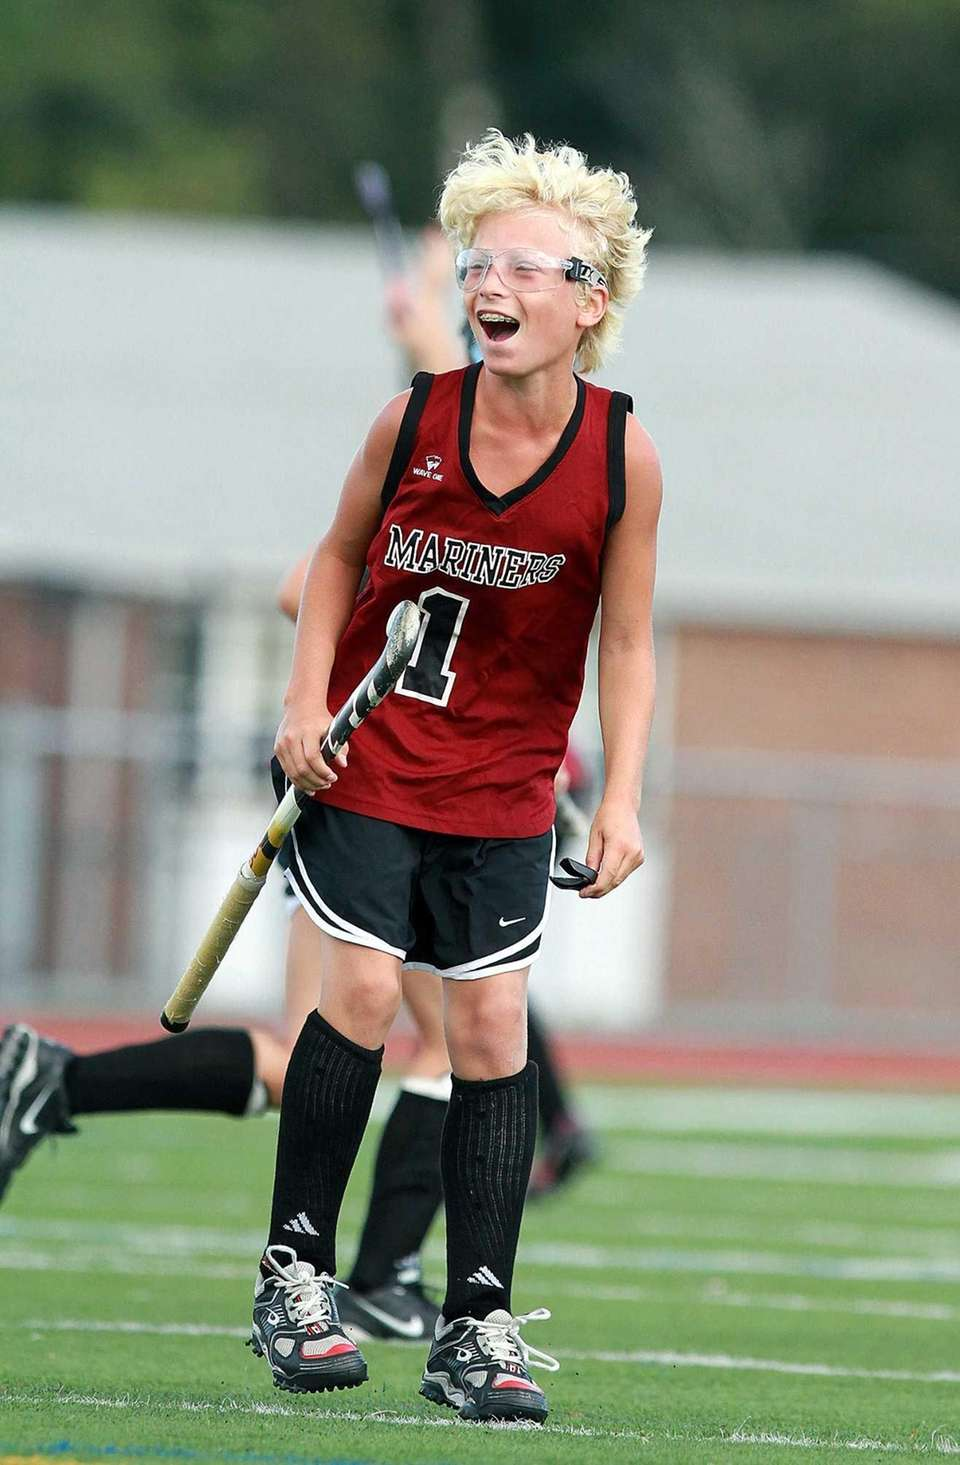 Southampton field hockey player Keeling Pilaro celebrates after